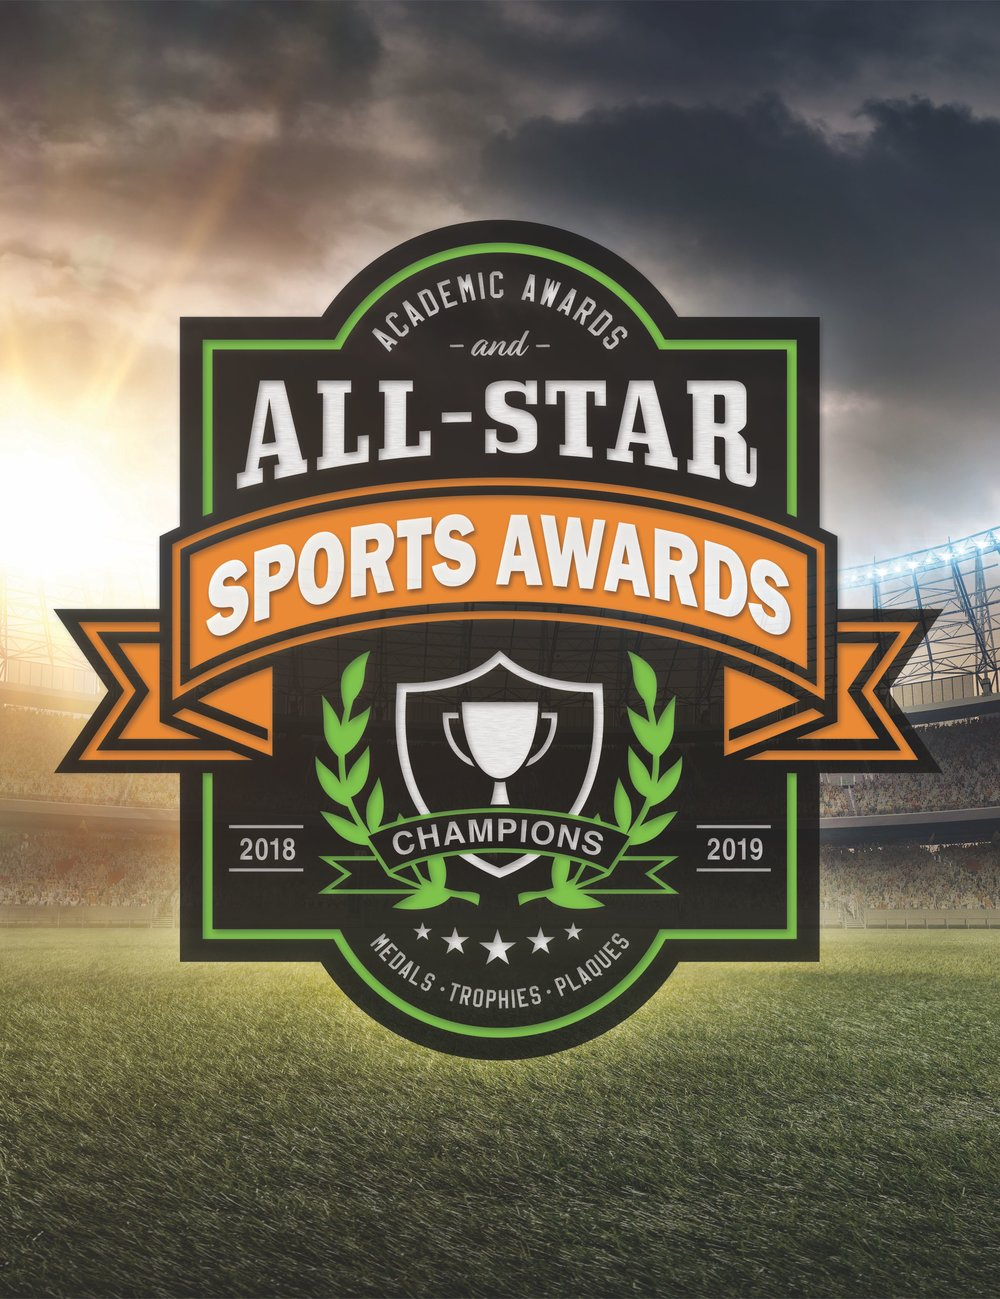 Click to browse our academic awards and all-star sports awards digital catalog